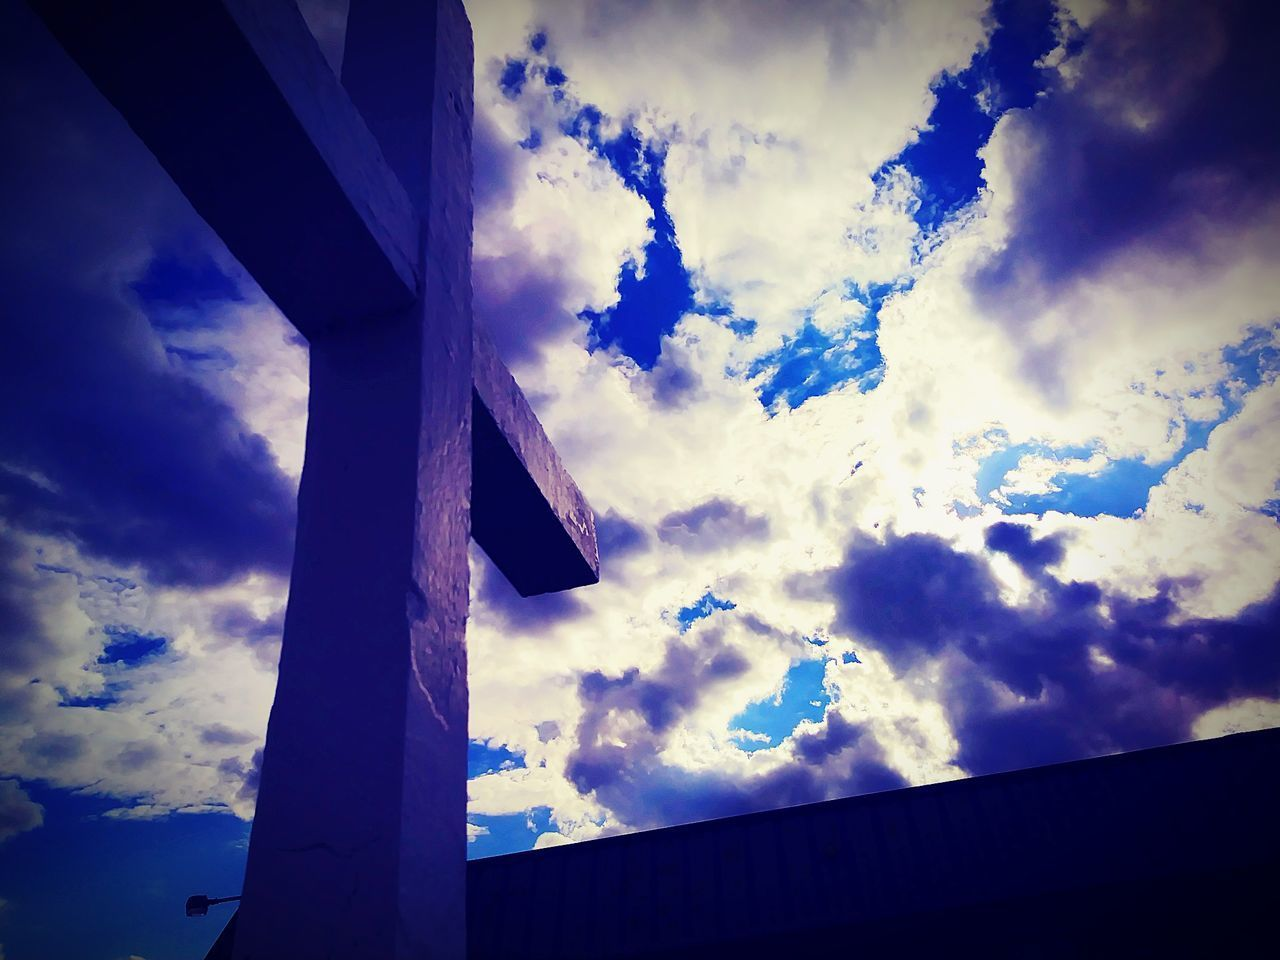 cloud - sky, sky, low angle view, no people, day, outdoors, built structure, architecture, nature